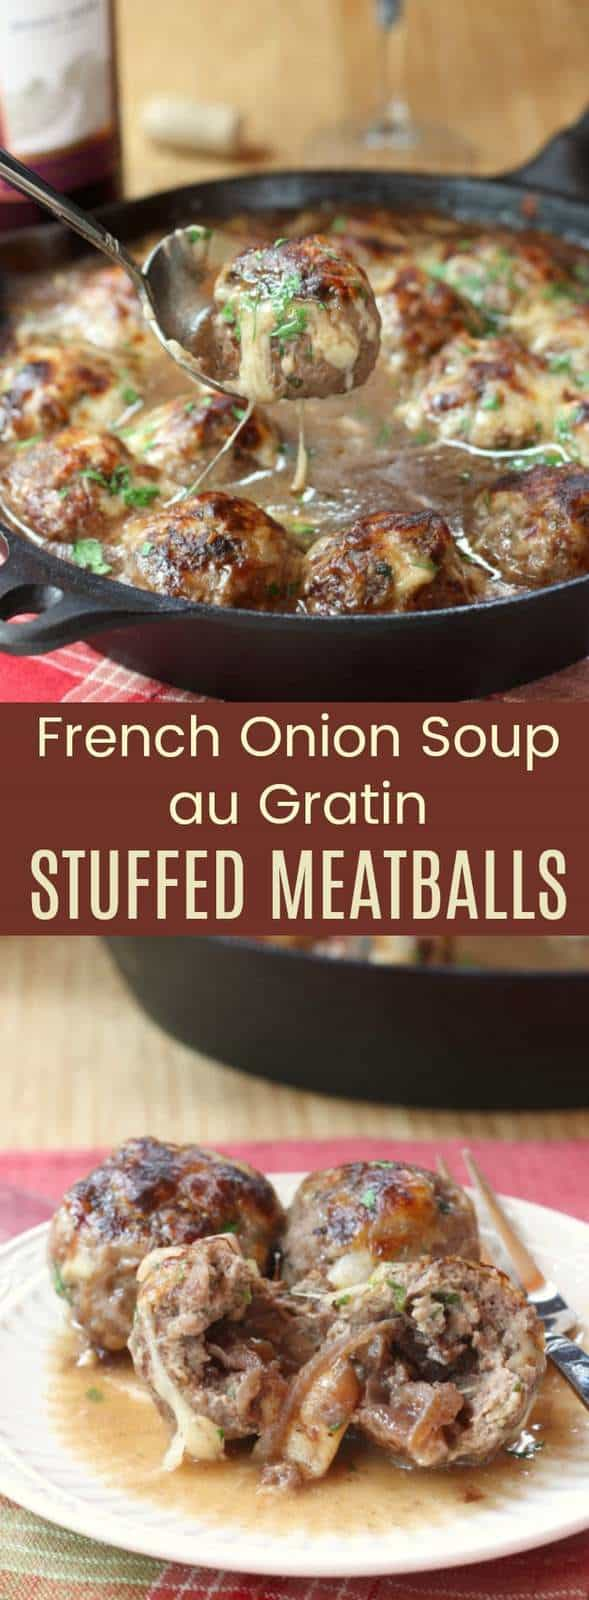 French Onion Soup au Gratin Stuffed Meatballs - cheesy stuffed meatballs with caramelized onions are the ultimate comfort food.